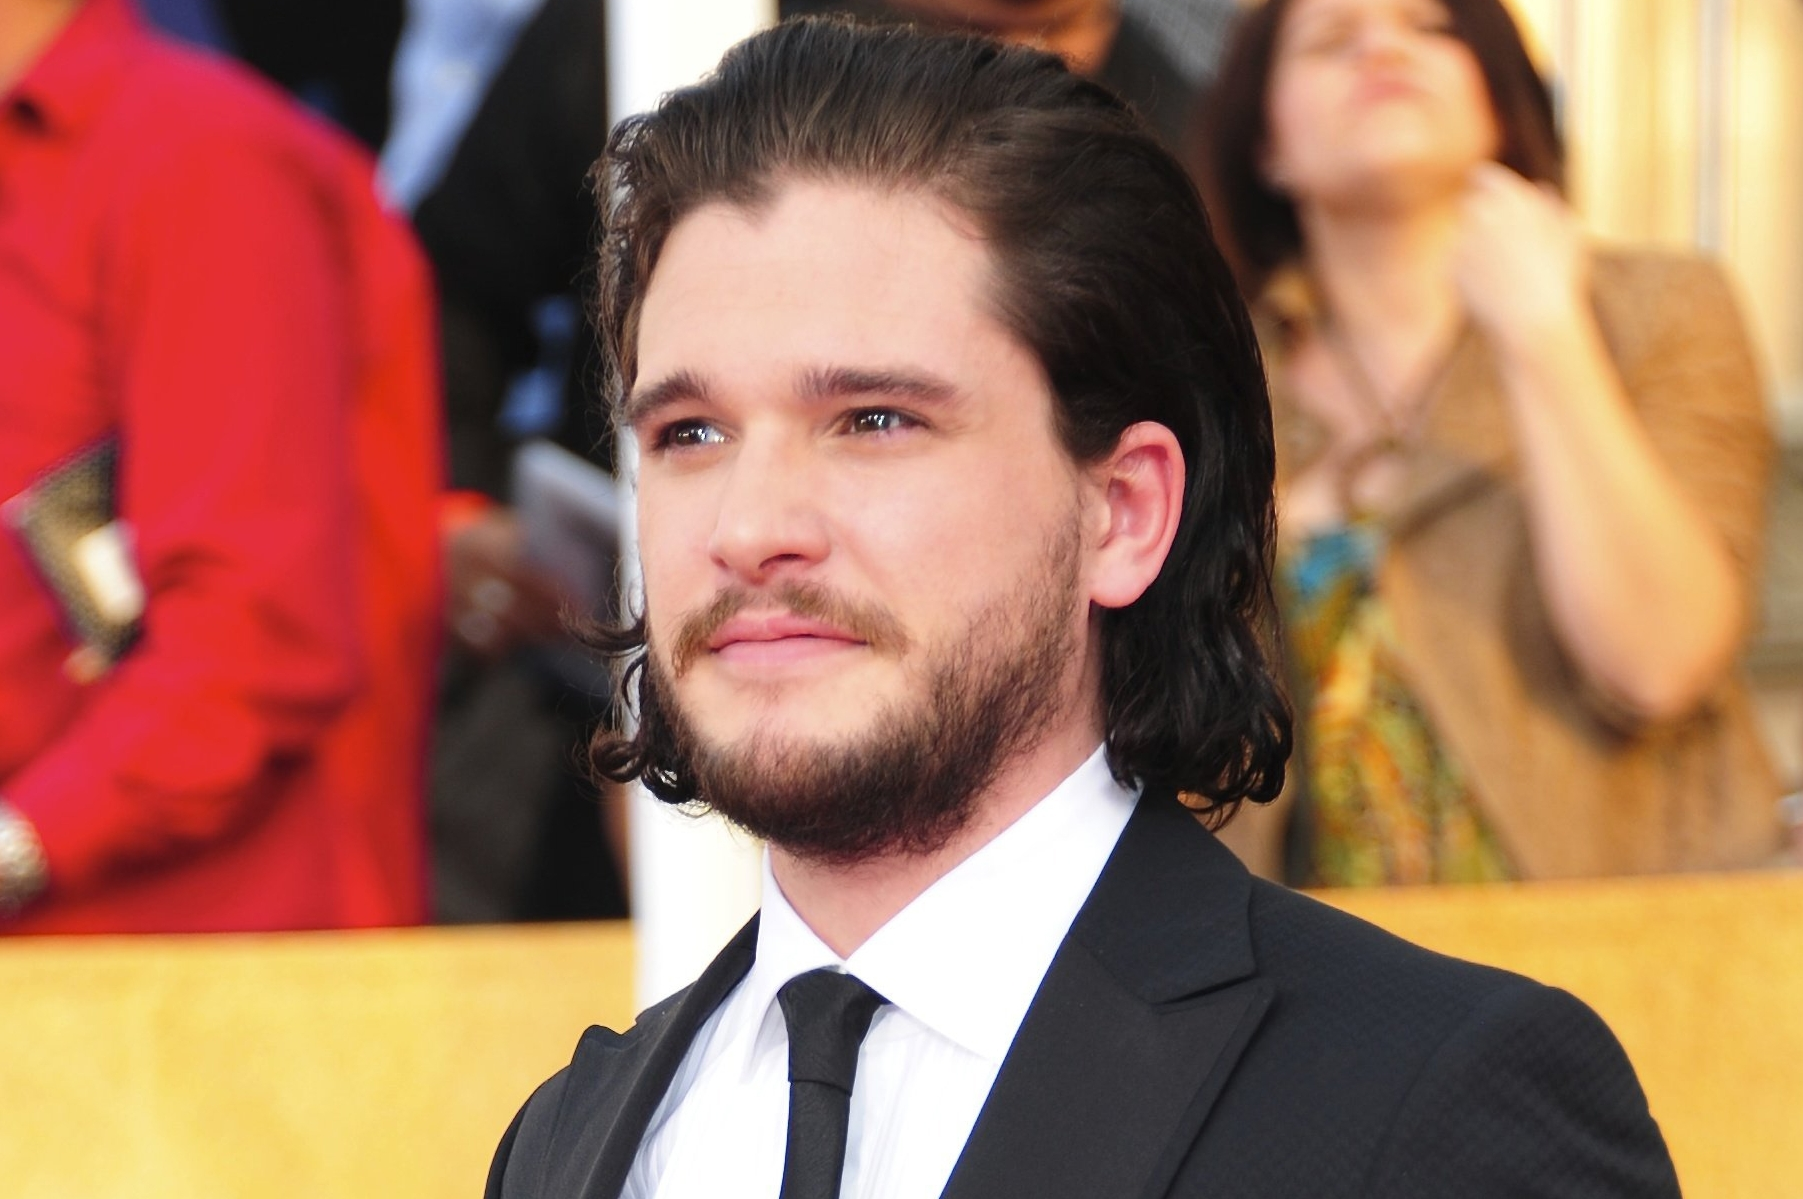 'GAME OF THRONES' STARS KIT HARINGTON AND ROSE LESLIE ARE ENGAGED